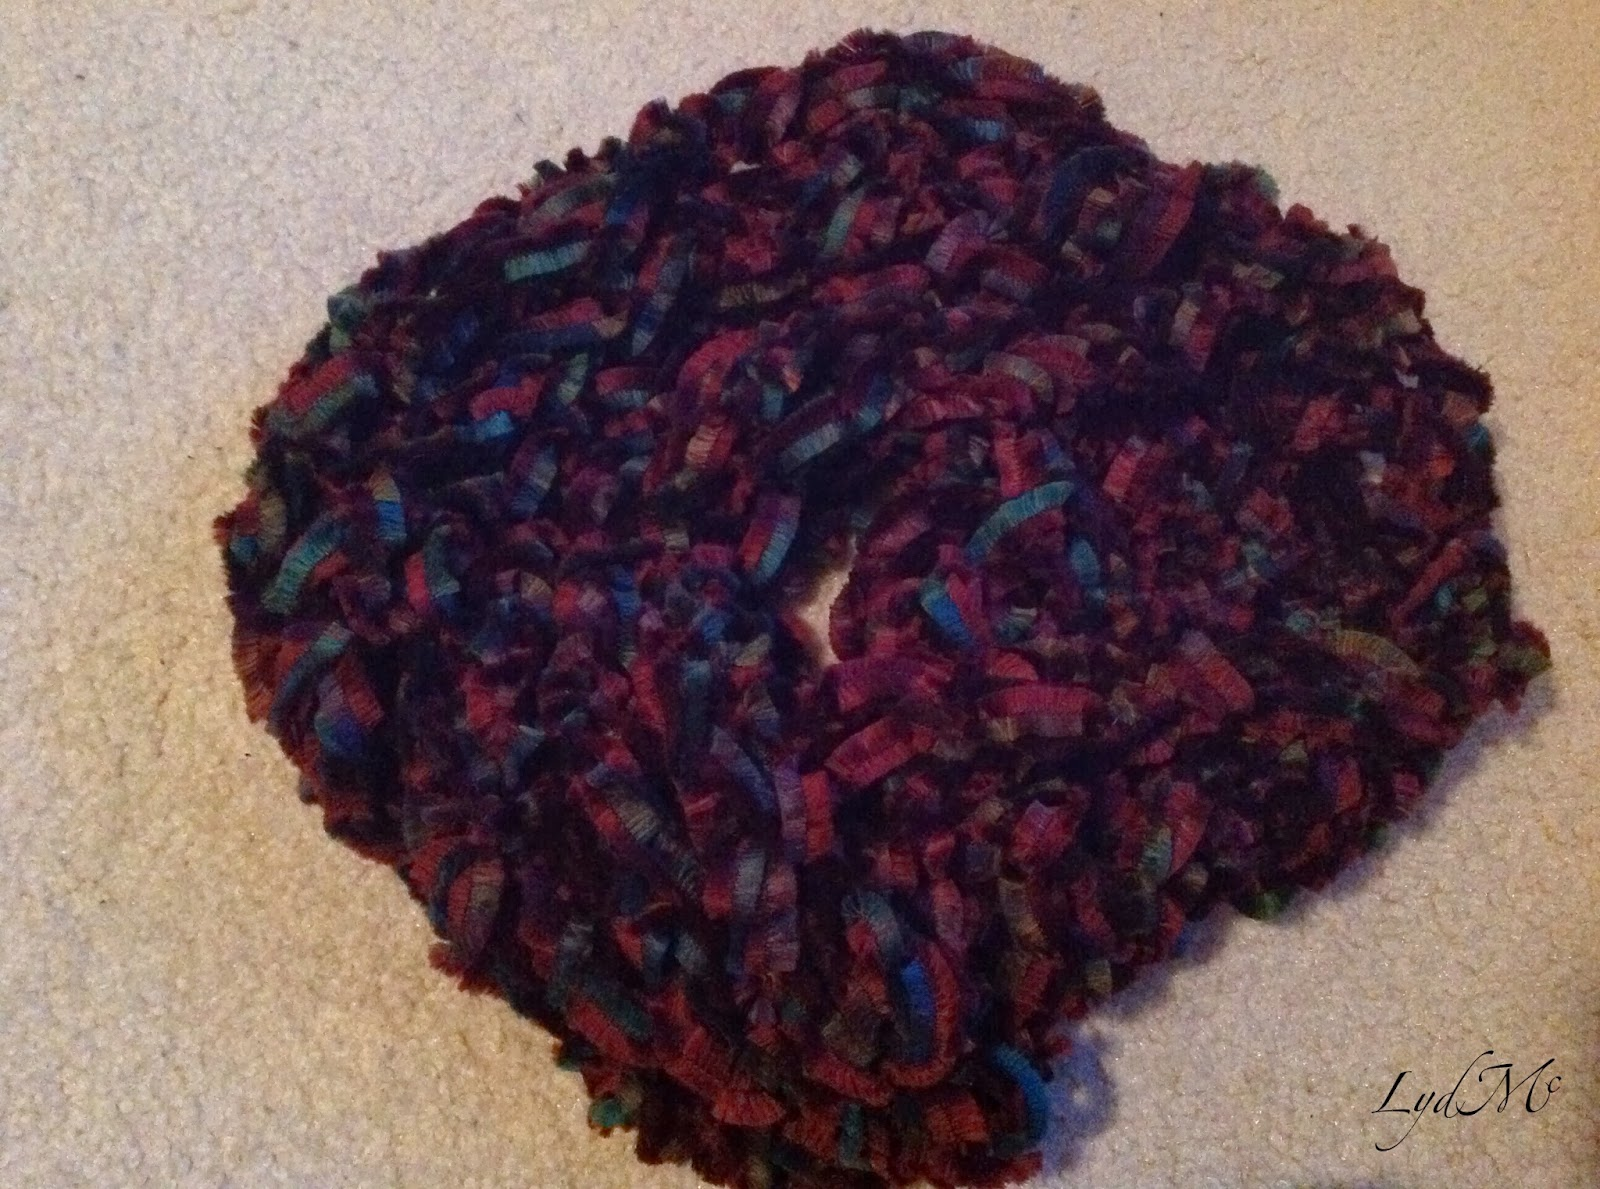 LydMc: Arm Knitting: The Literally Handmade Moebius Scarf